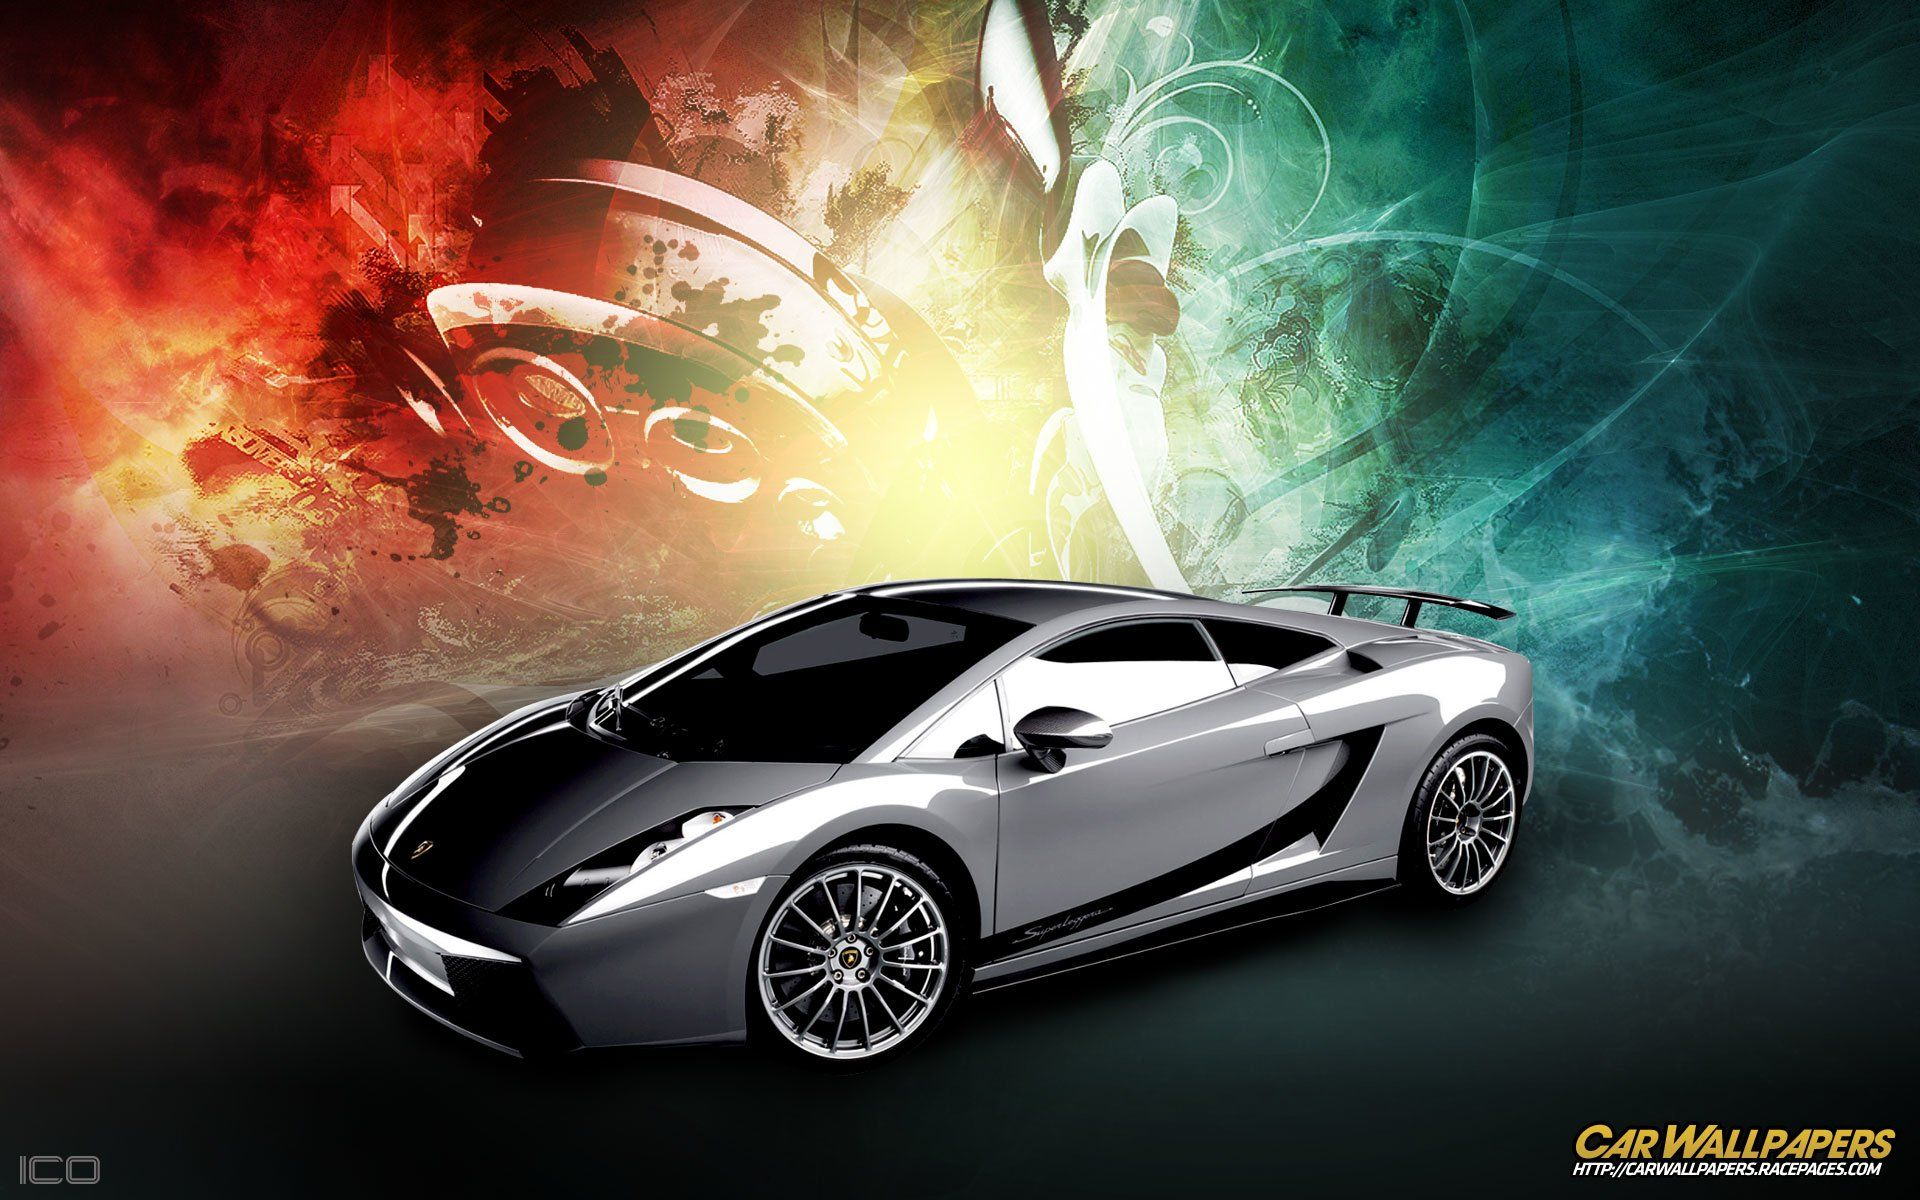 Lamborghini Wallpapers Hd 1131 707 Lamborghini Images Wallpapers 41 Wallpapers Adorable Wallpapers Lamborghini Gallardo Car Wallpapers Lamborghini